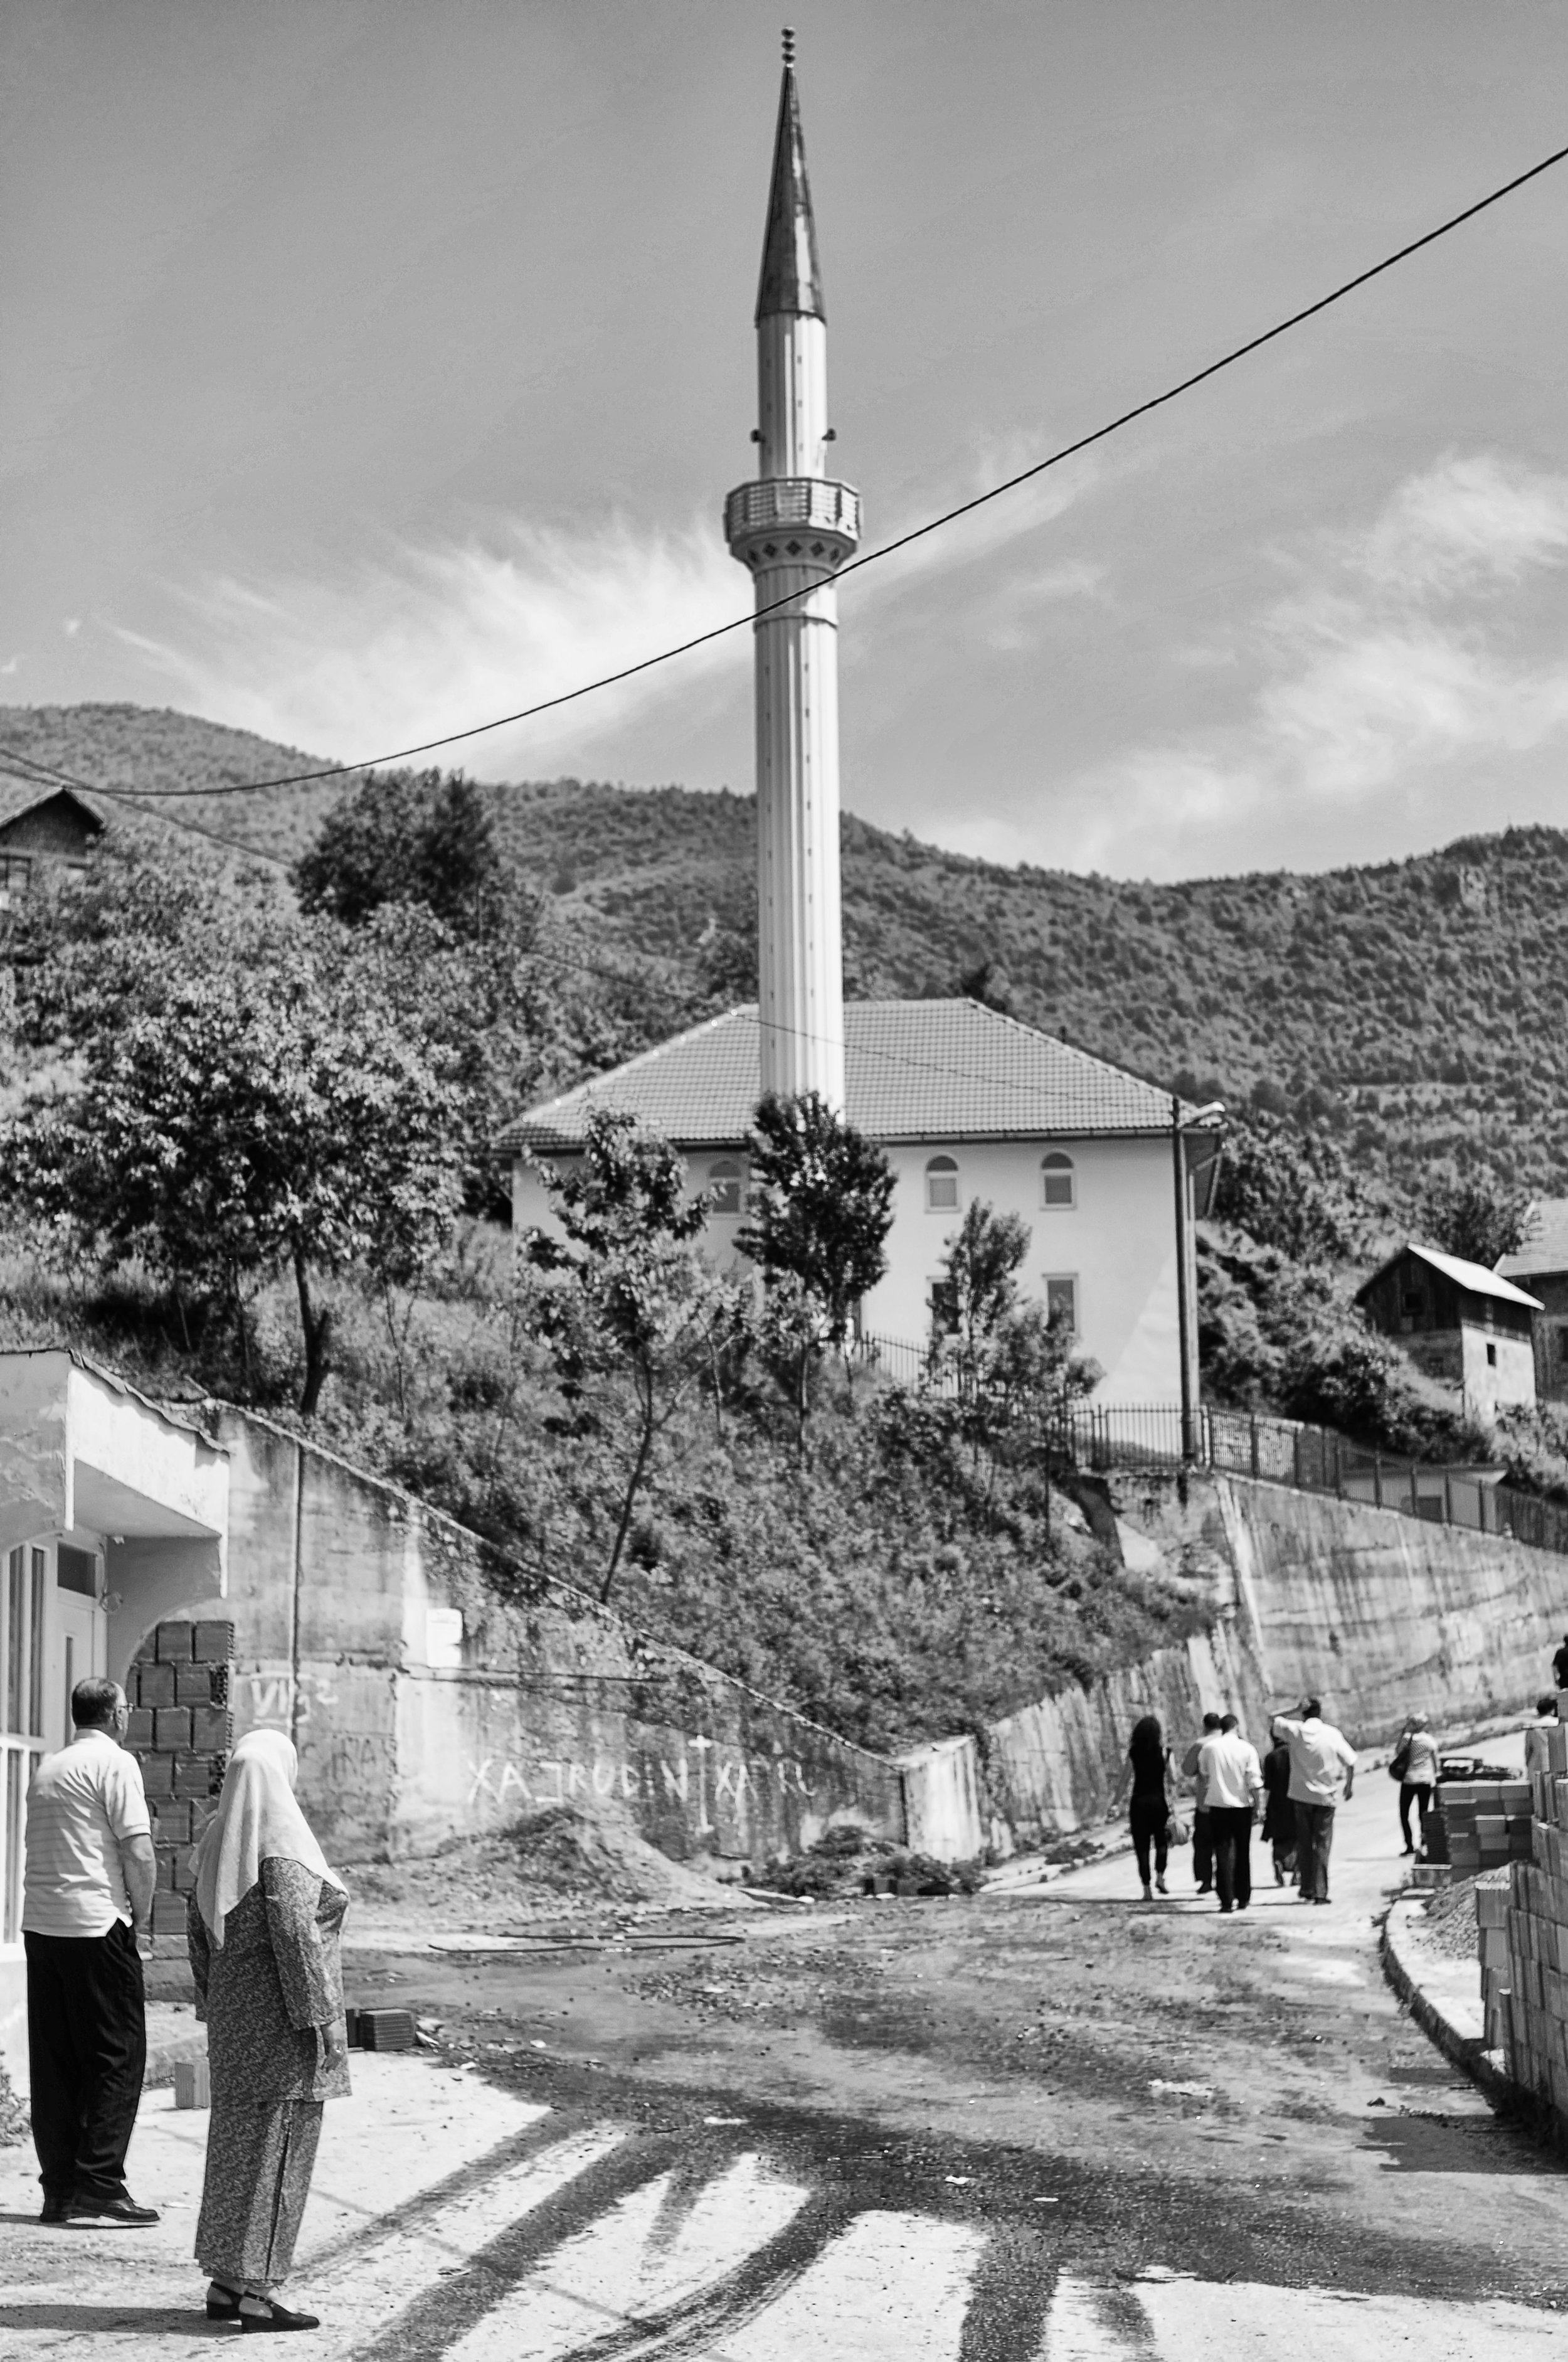 The rebuilt white mosque of Medjedja. During the Bosnian War, the Serbs had reduced the mosque to rubble as they overtook the town.